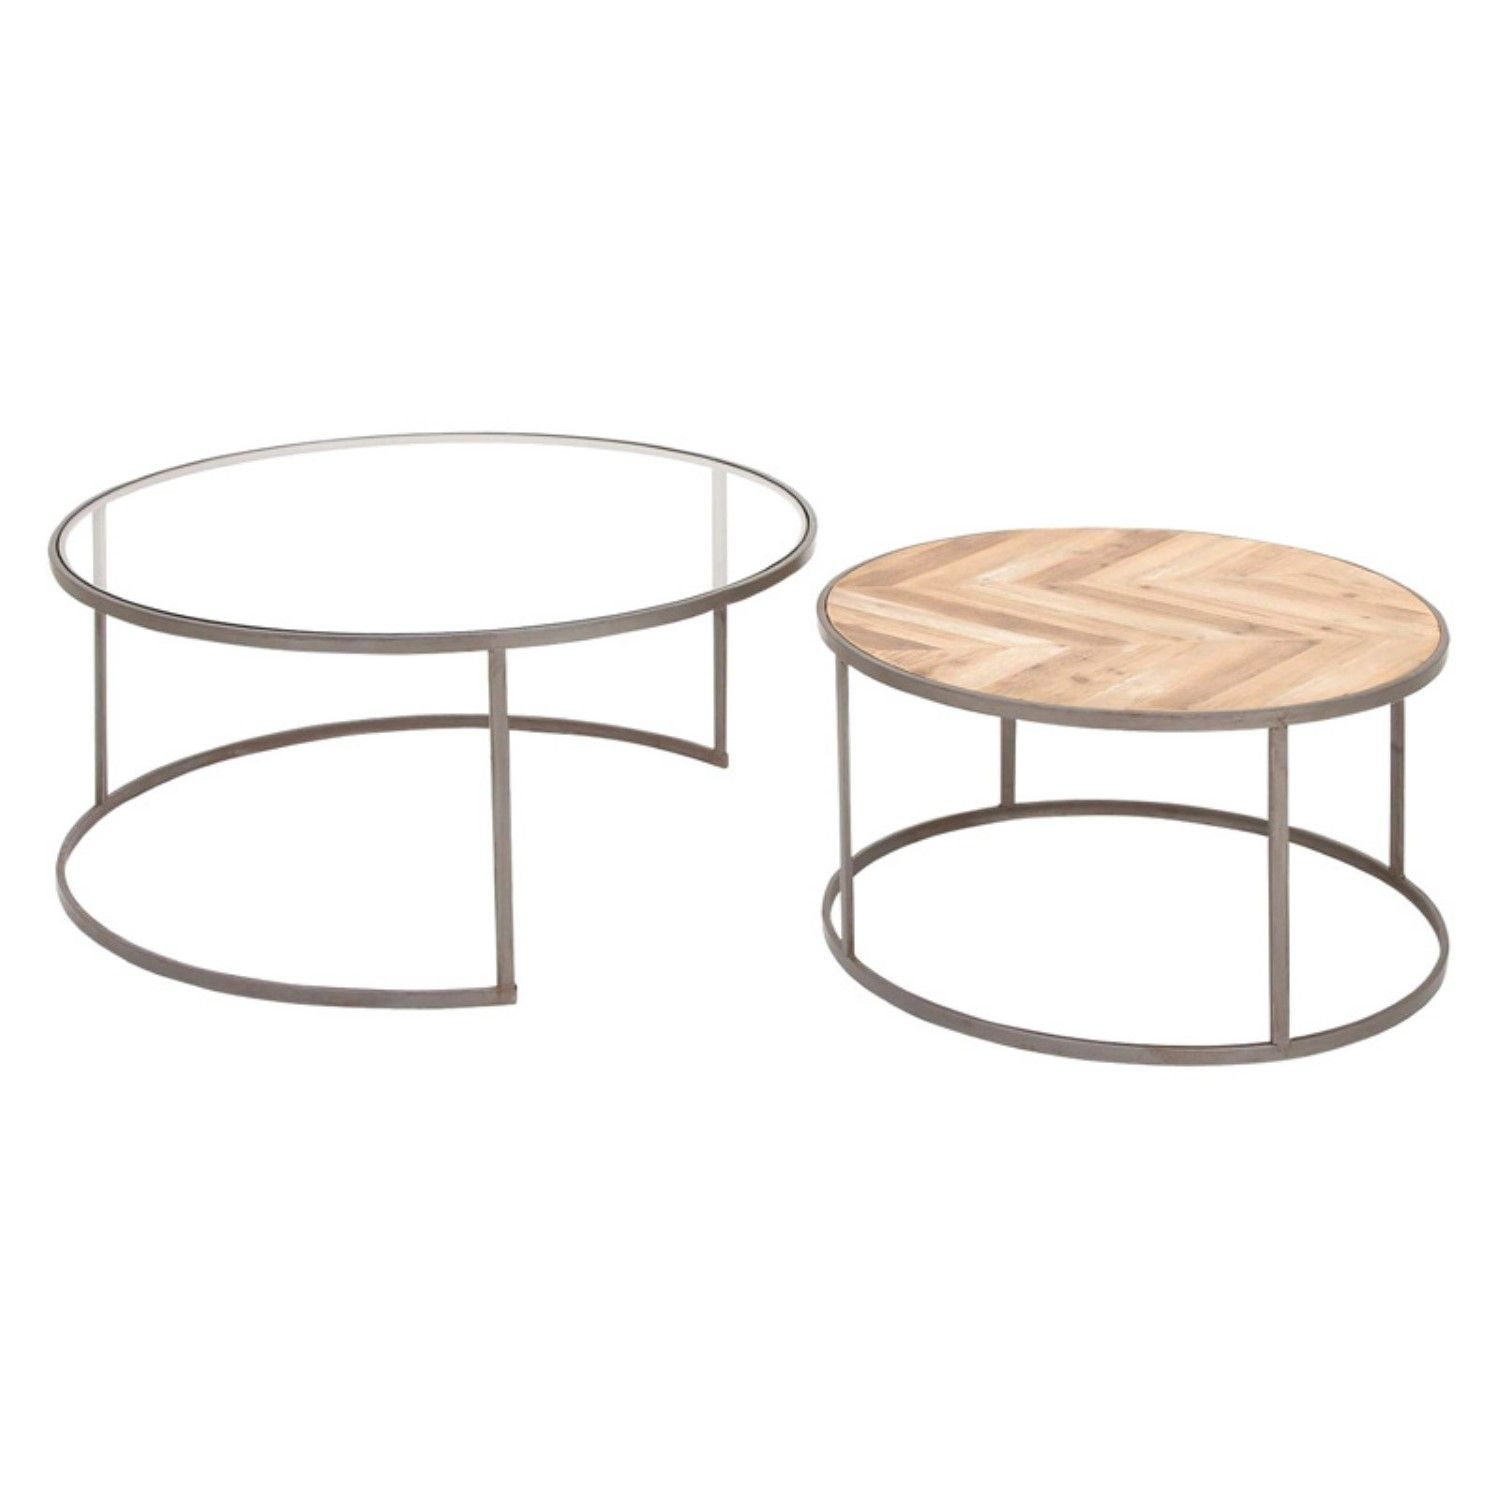 Decmode Round Coffee Table Set Of 2 Round Coffee Table Sets